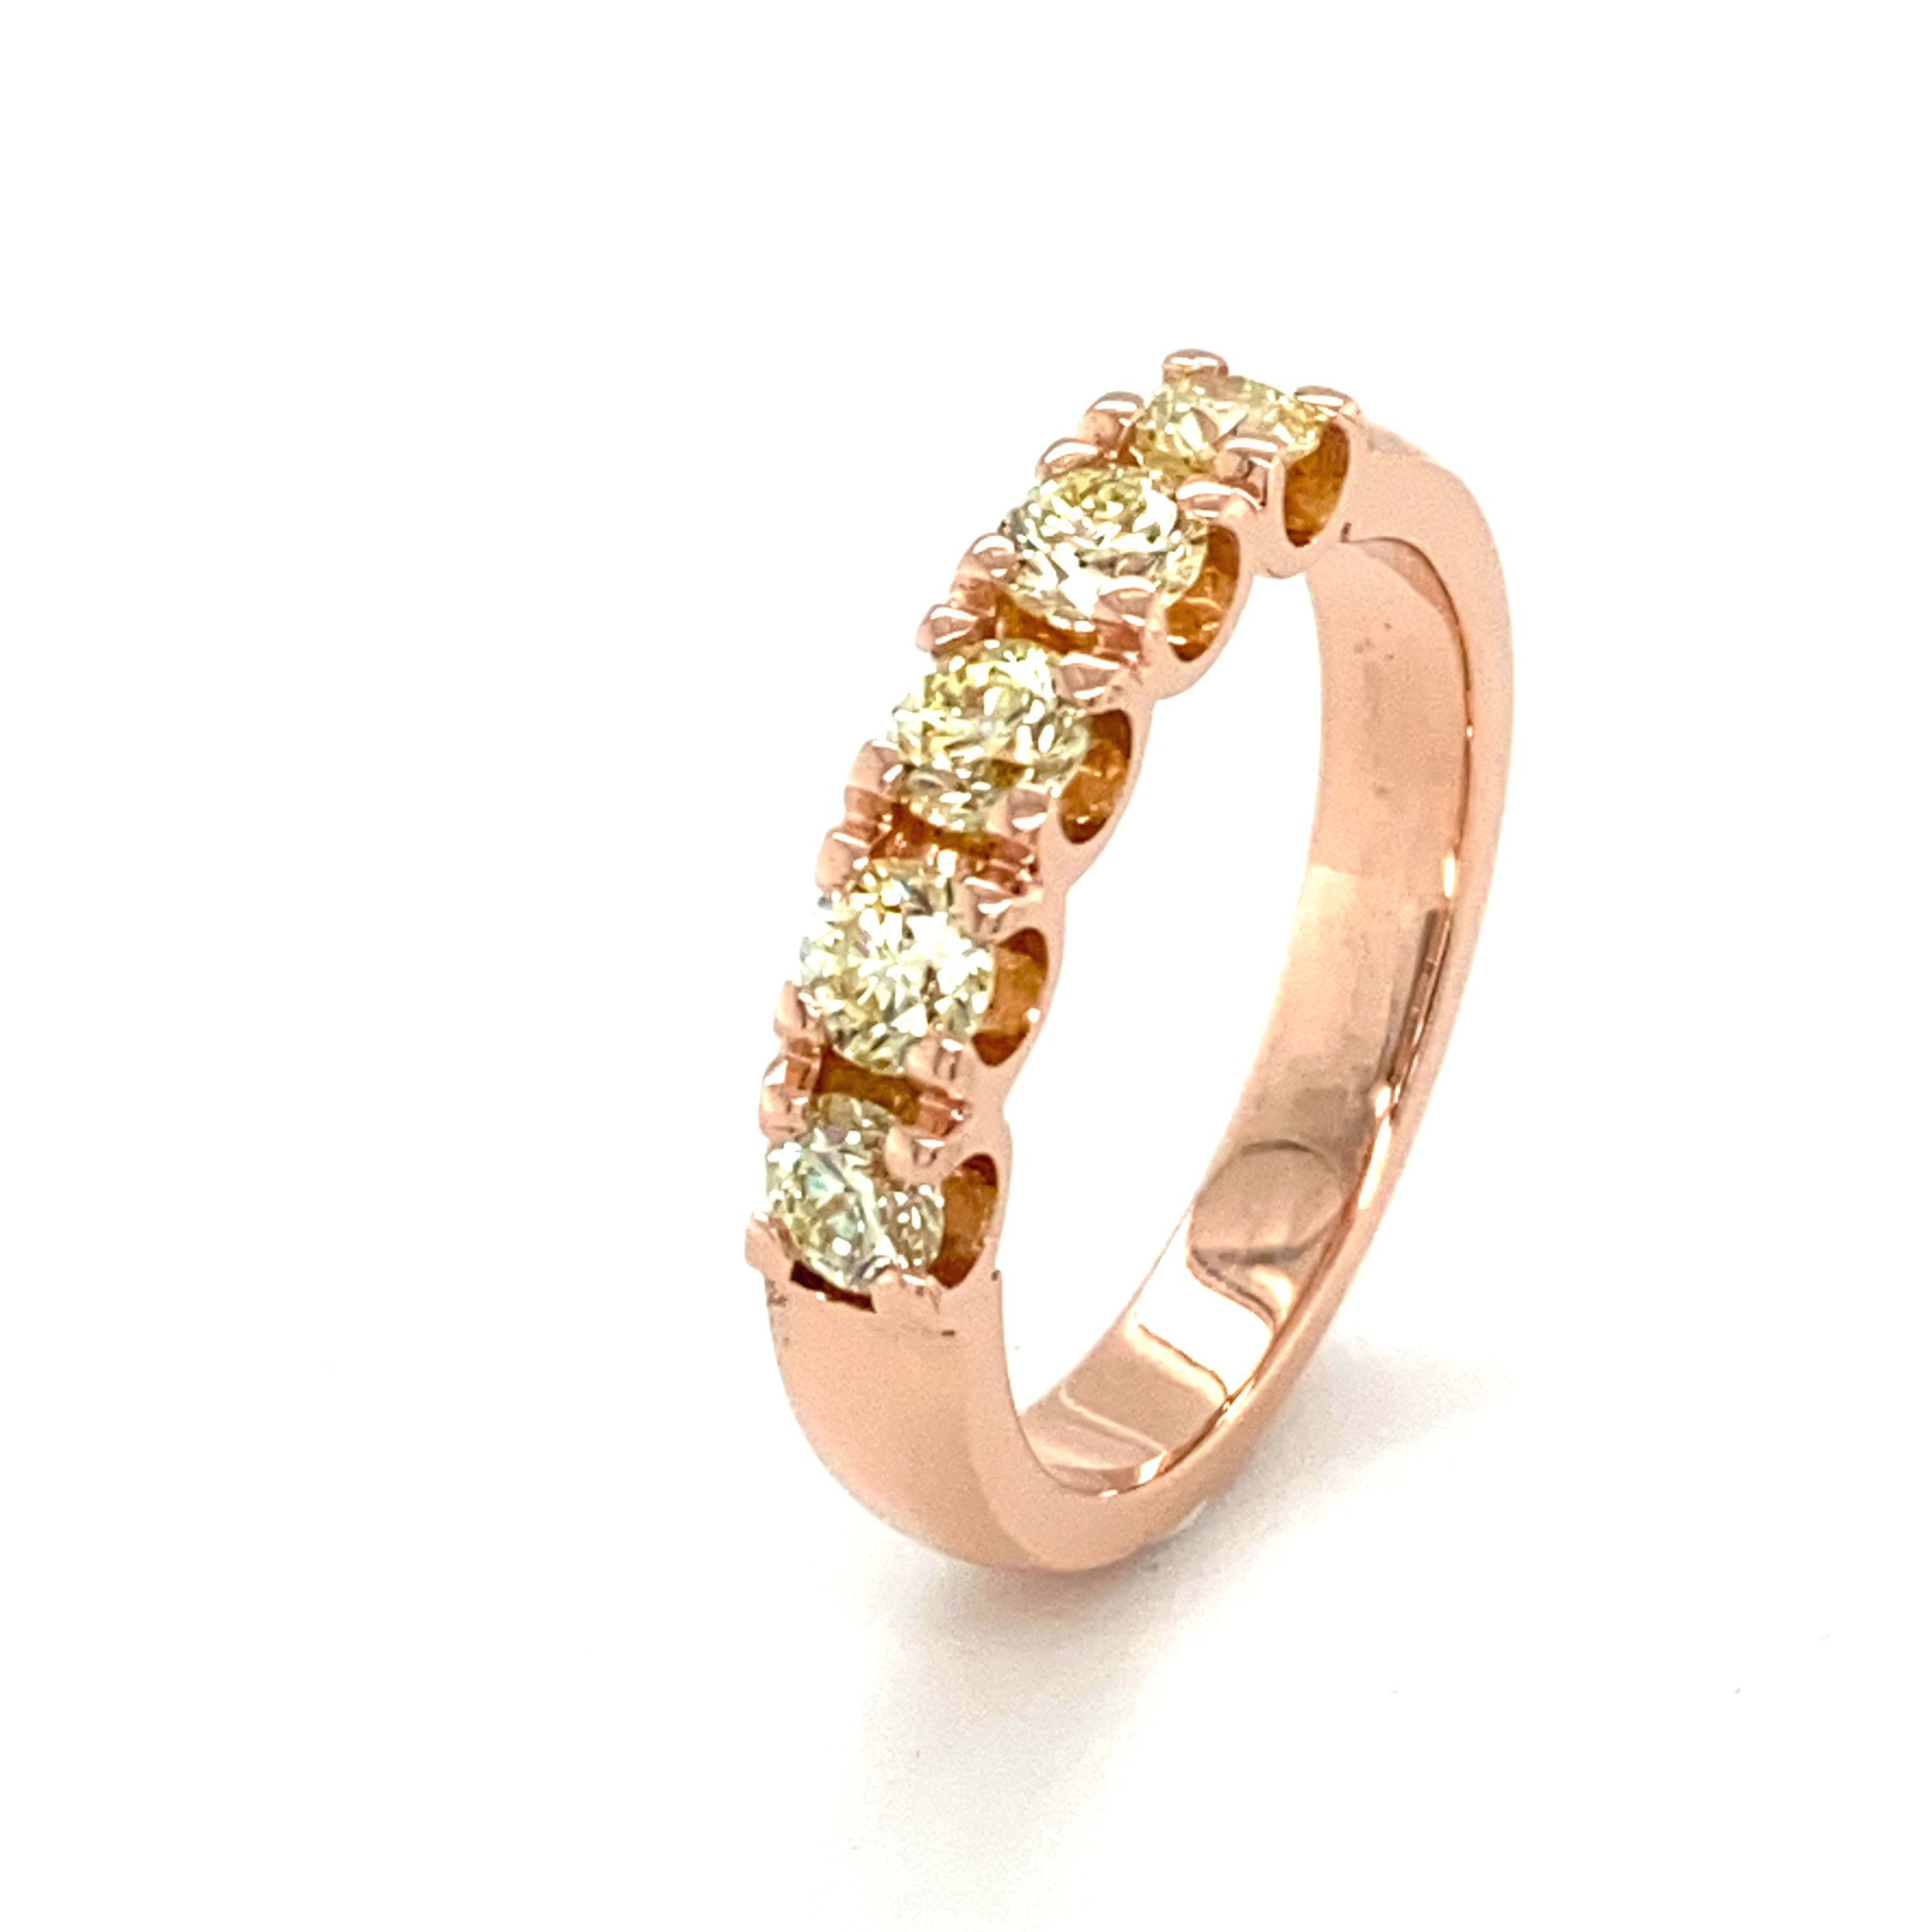 ROEMER by Bregje ROEMER by Bregje Gouden ring 1.00 ct. VVS/Cape